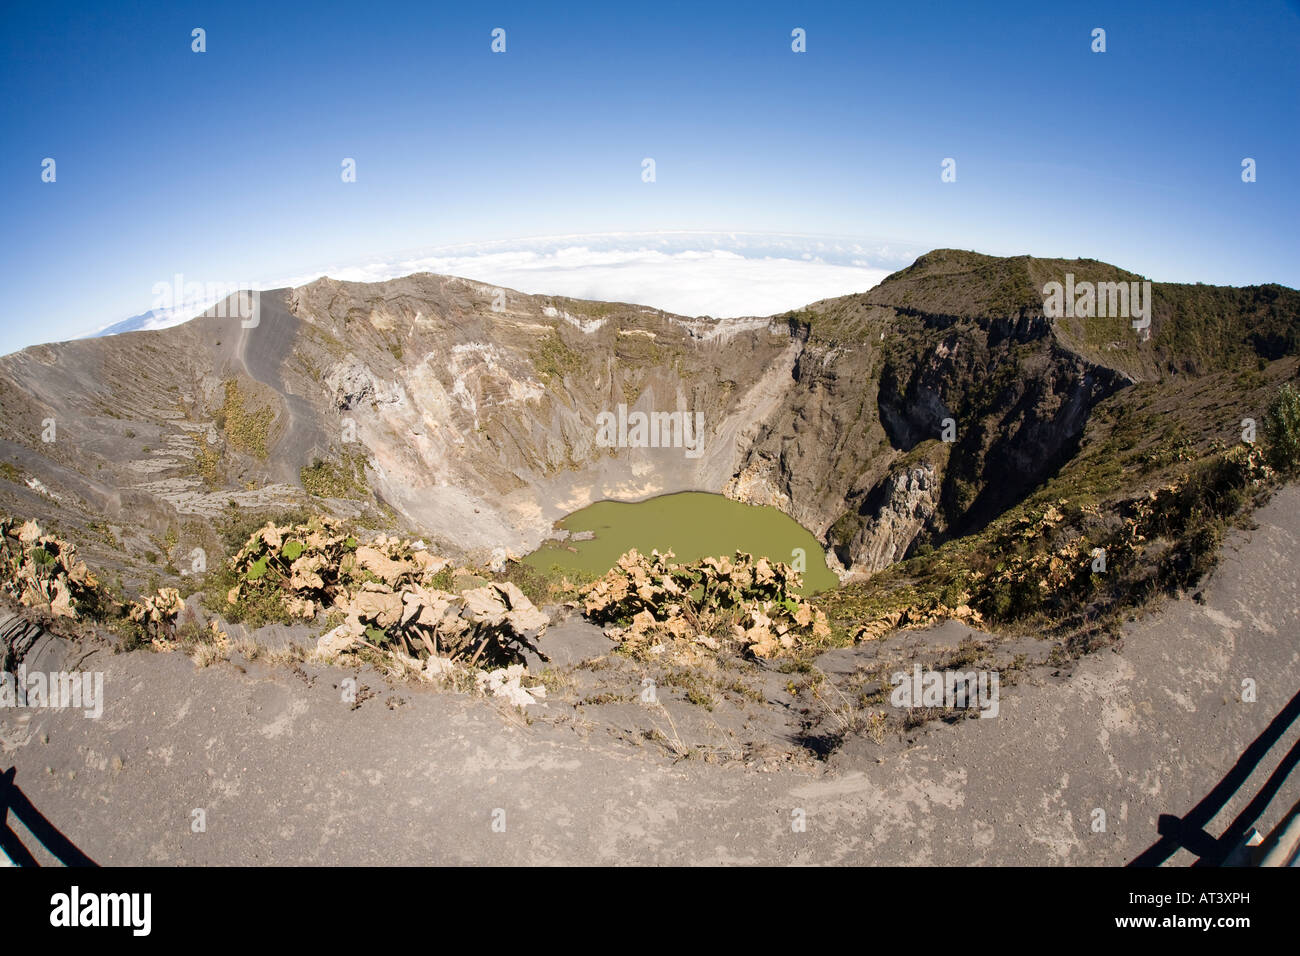 Costa Rica Cartago Volcan Irazu Volcano principal crater and lagoon through wide angle fisheye lens - Stock Image